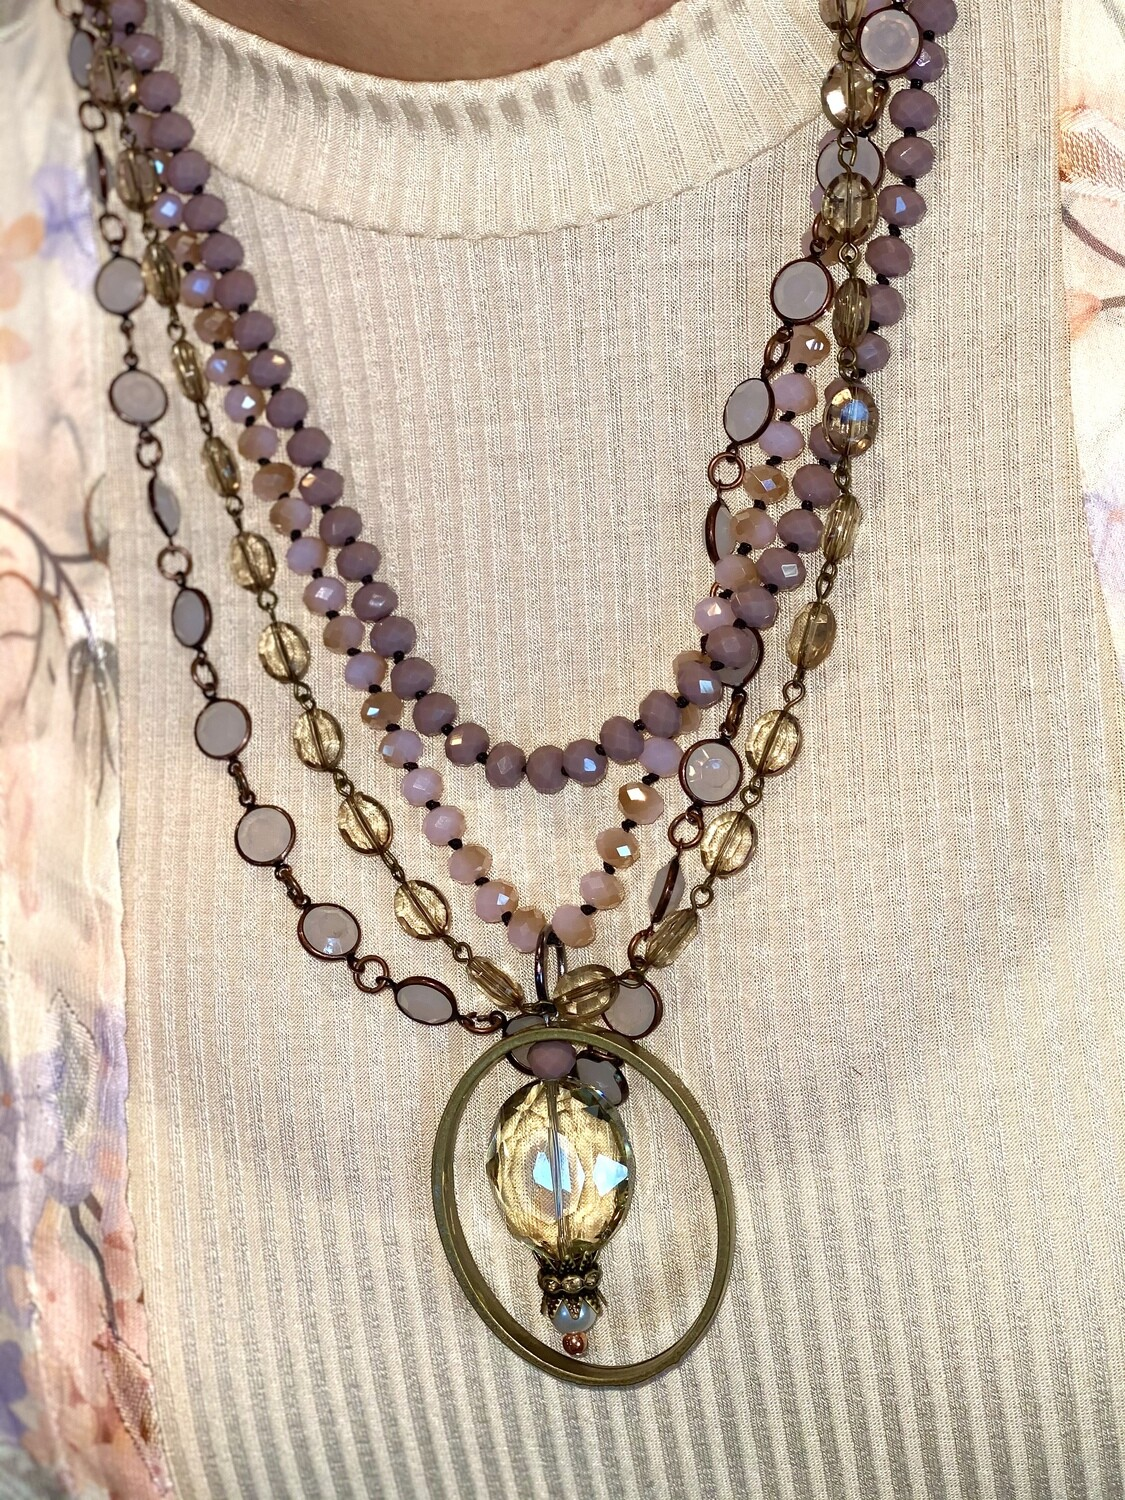 Four Strand Mixed Media Necklace